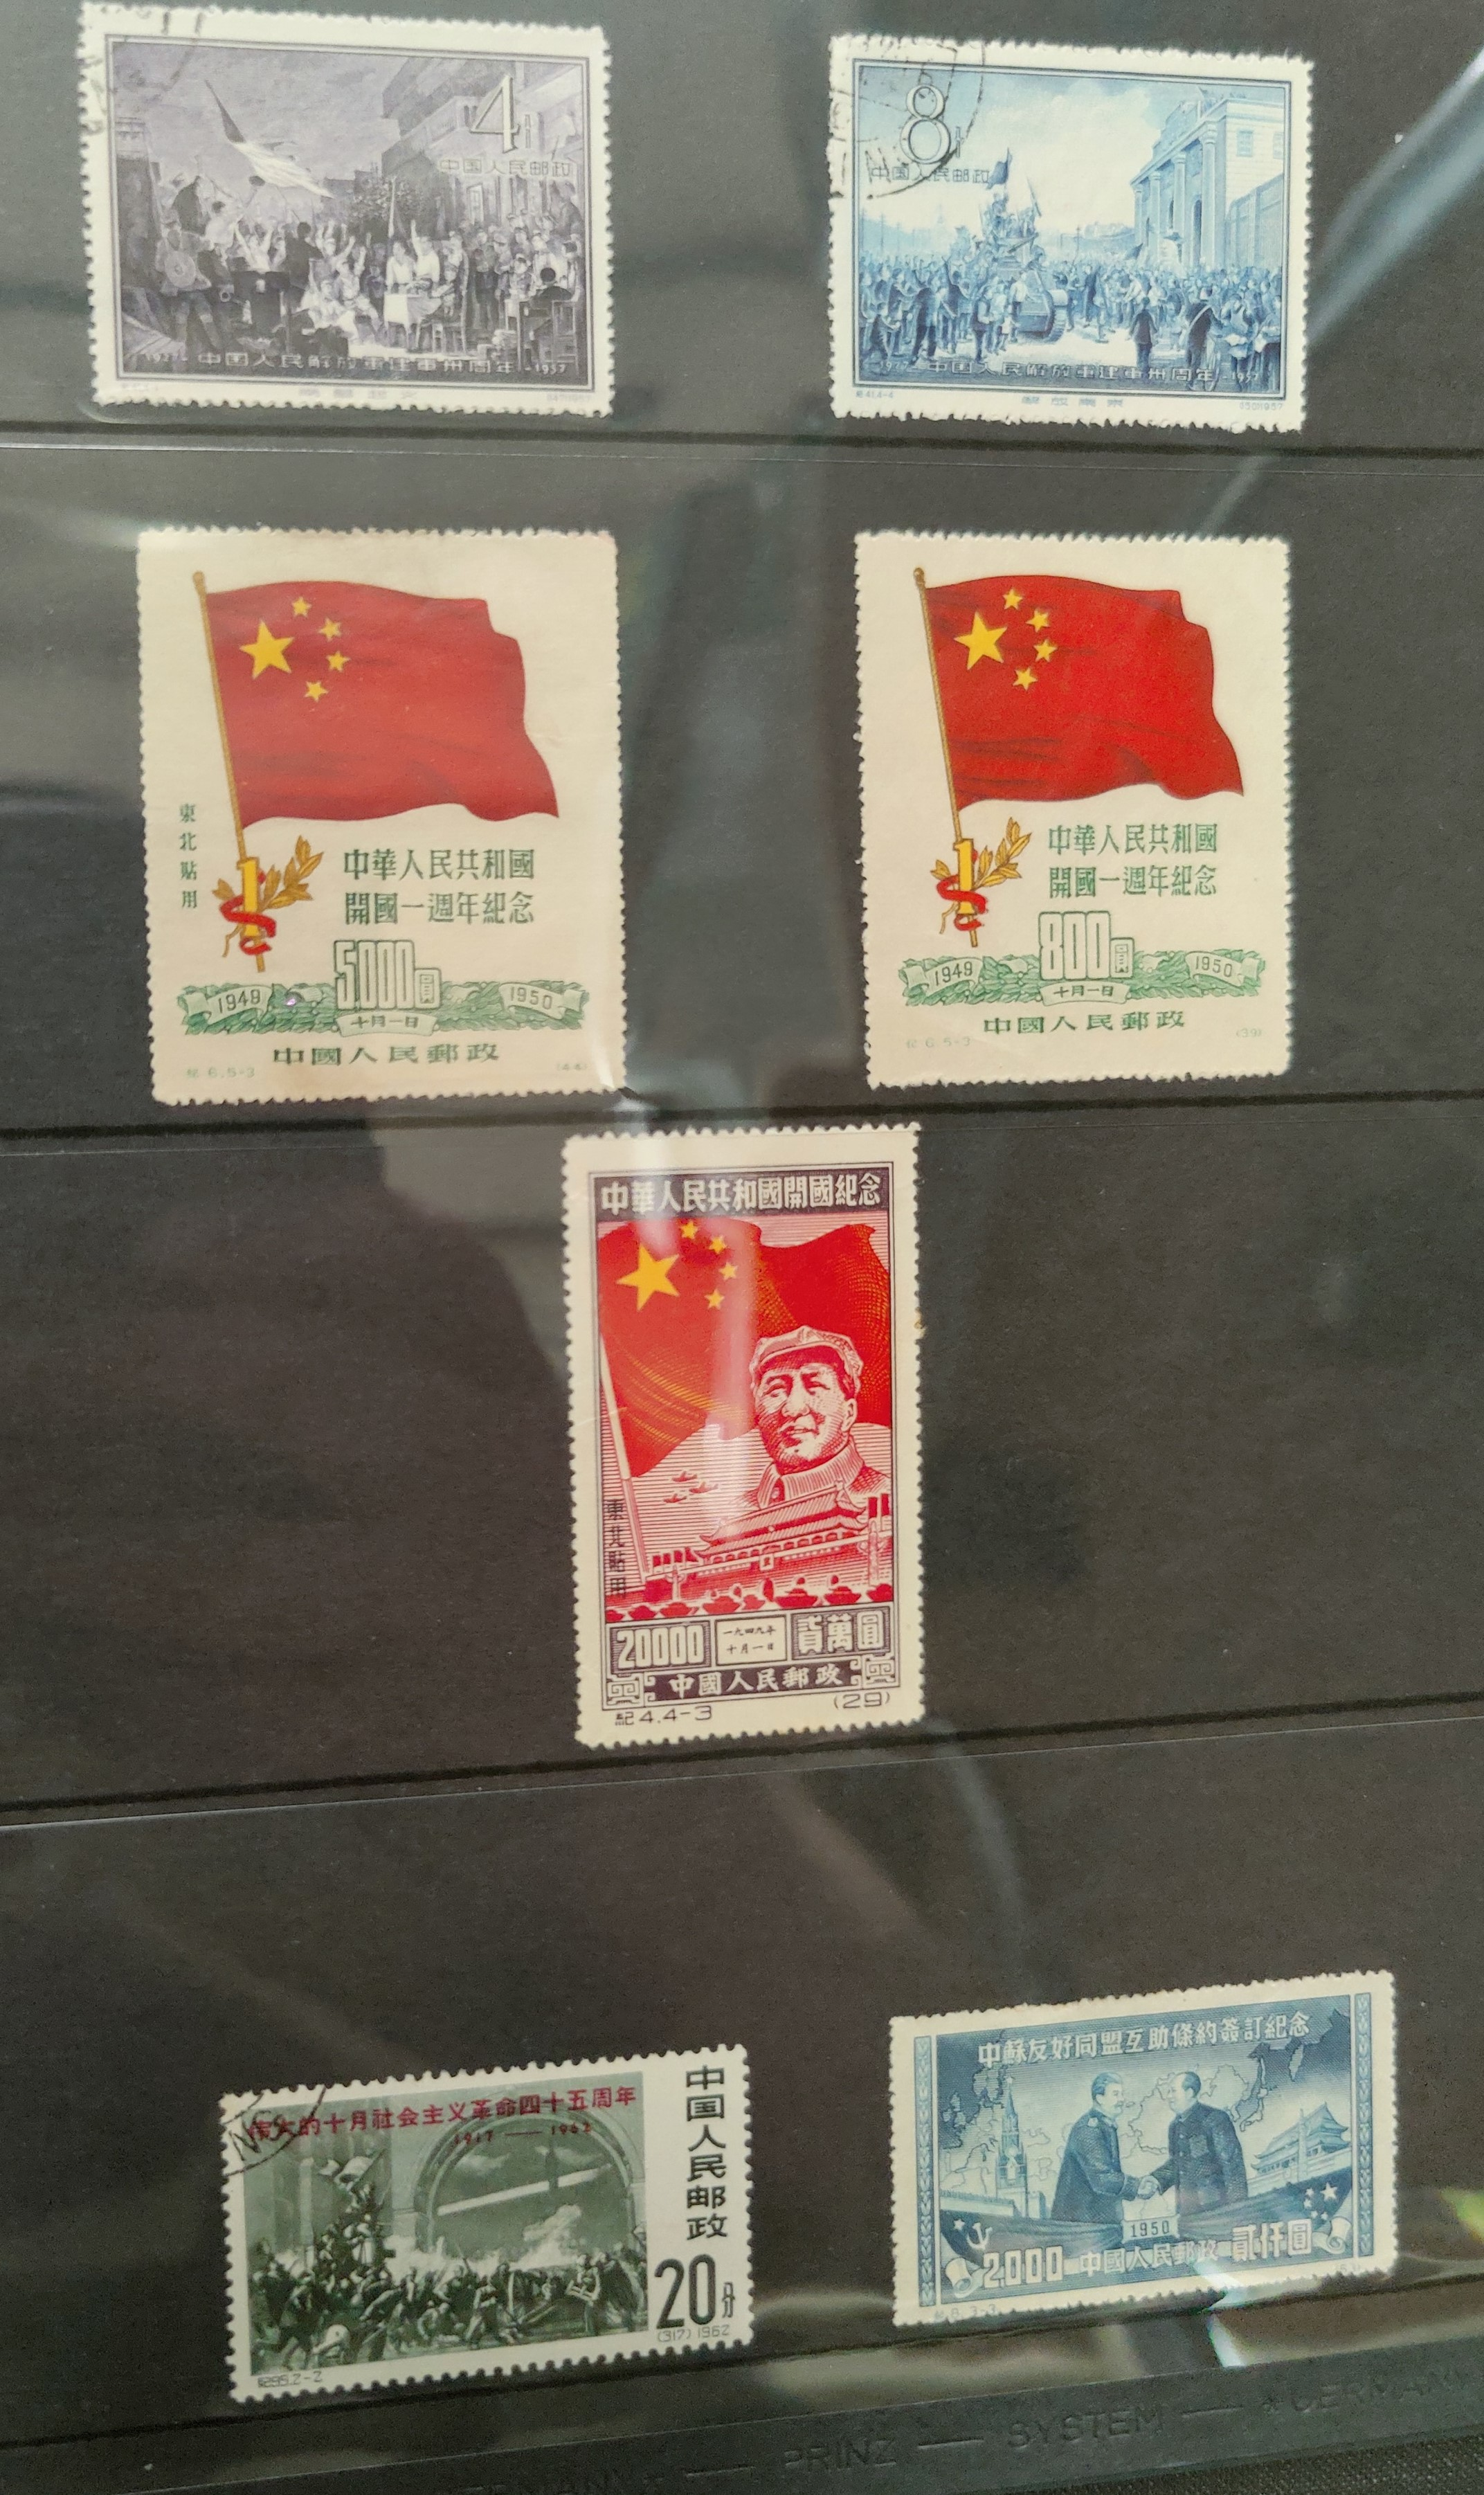 CHINA: a small collection in an album. - Image 5 of 5